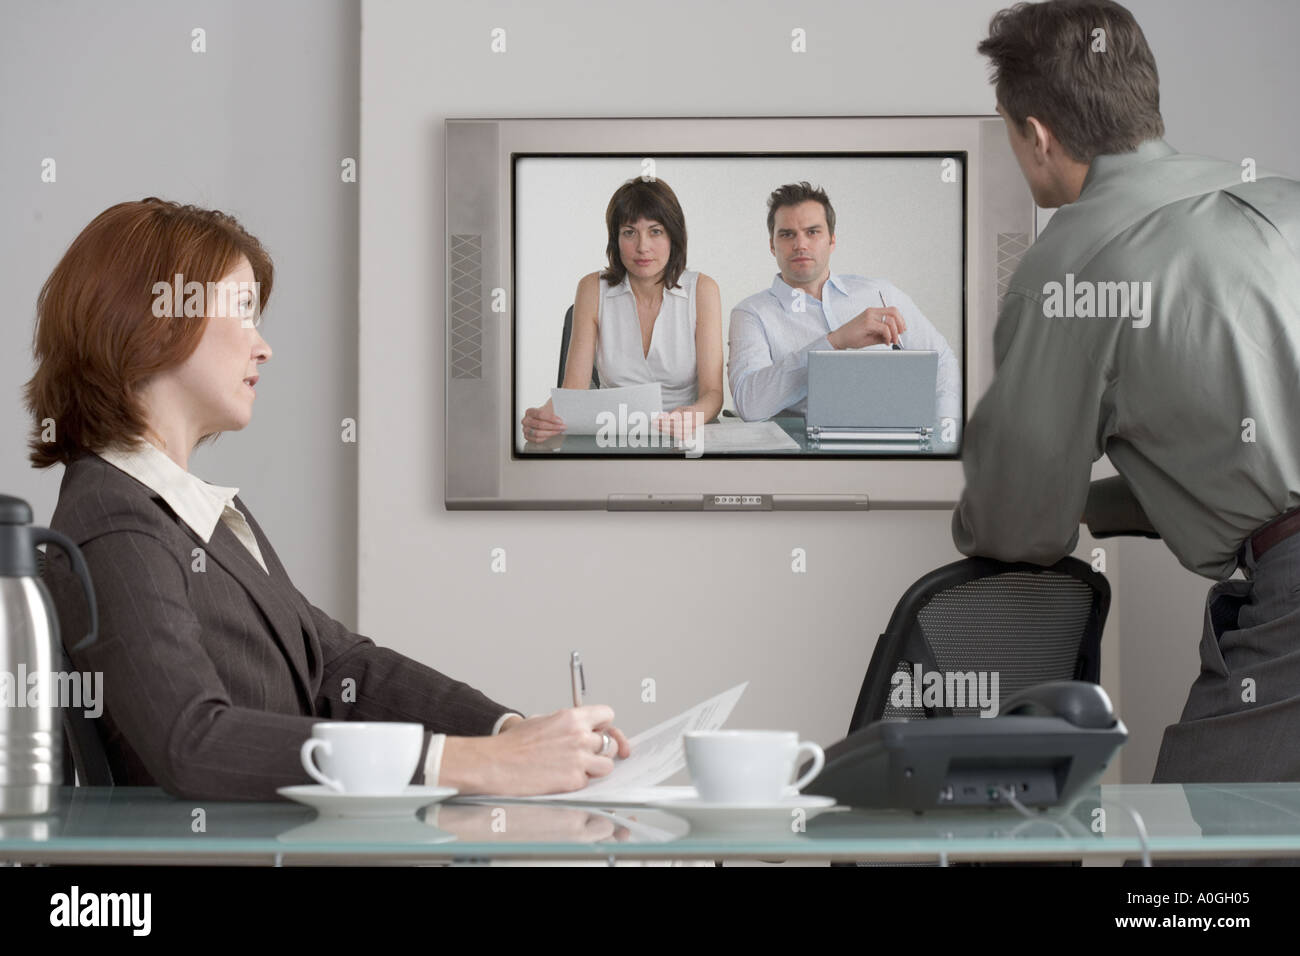 Businesspeople in videoconference - Stock Image